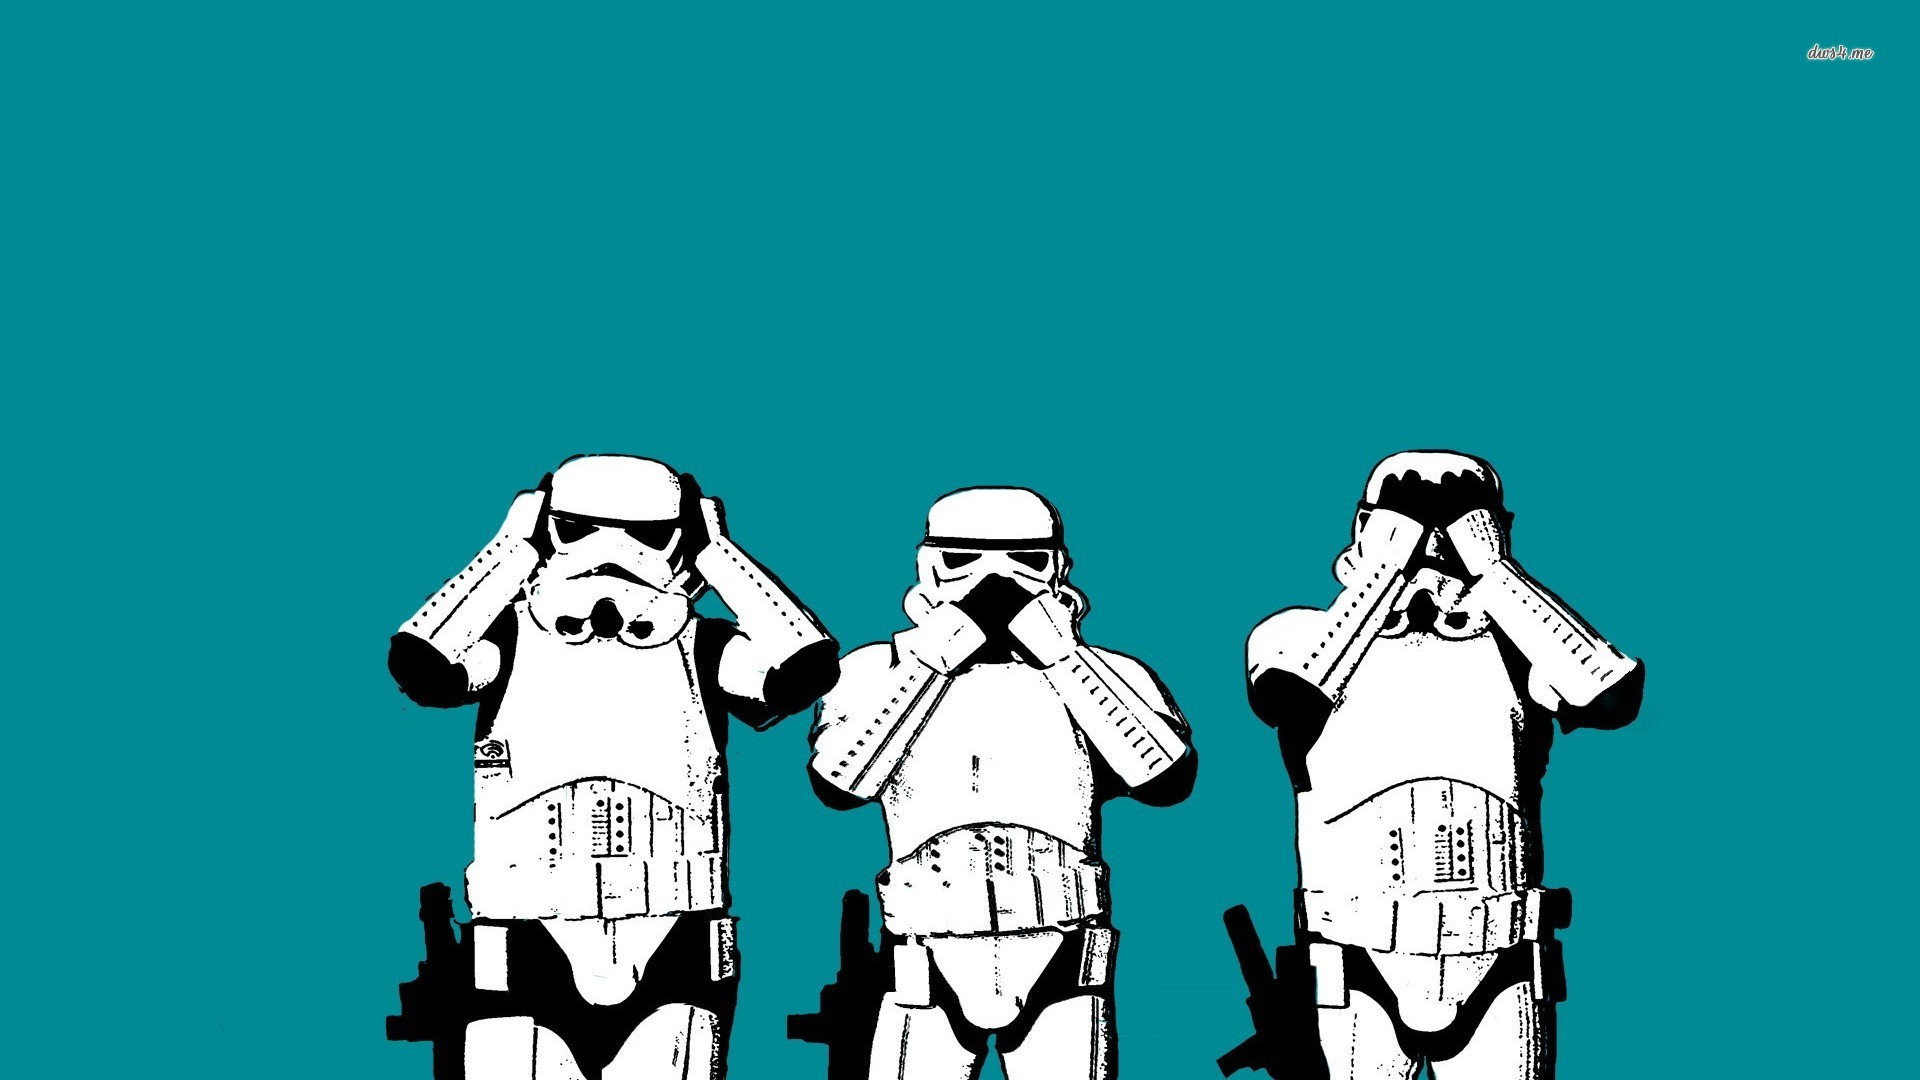 Stormtrooper Art Wallpapers The Art Mad Wallpapers 1920x1080